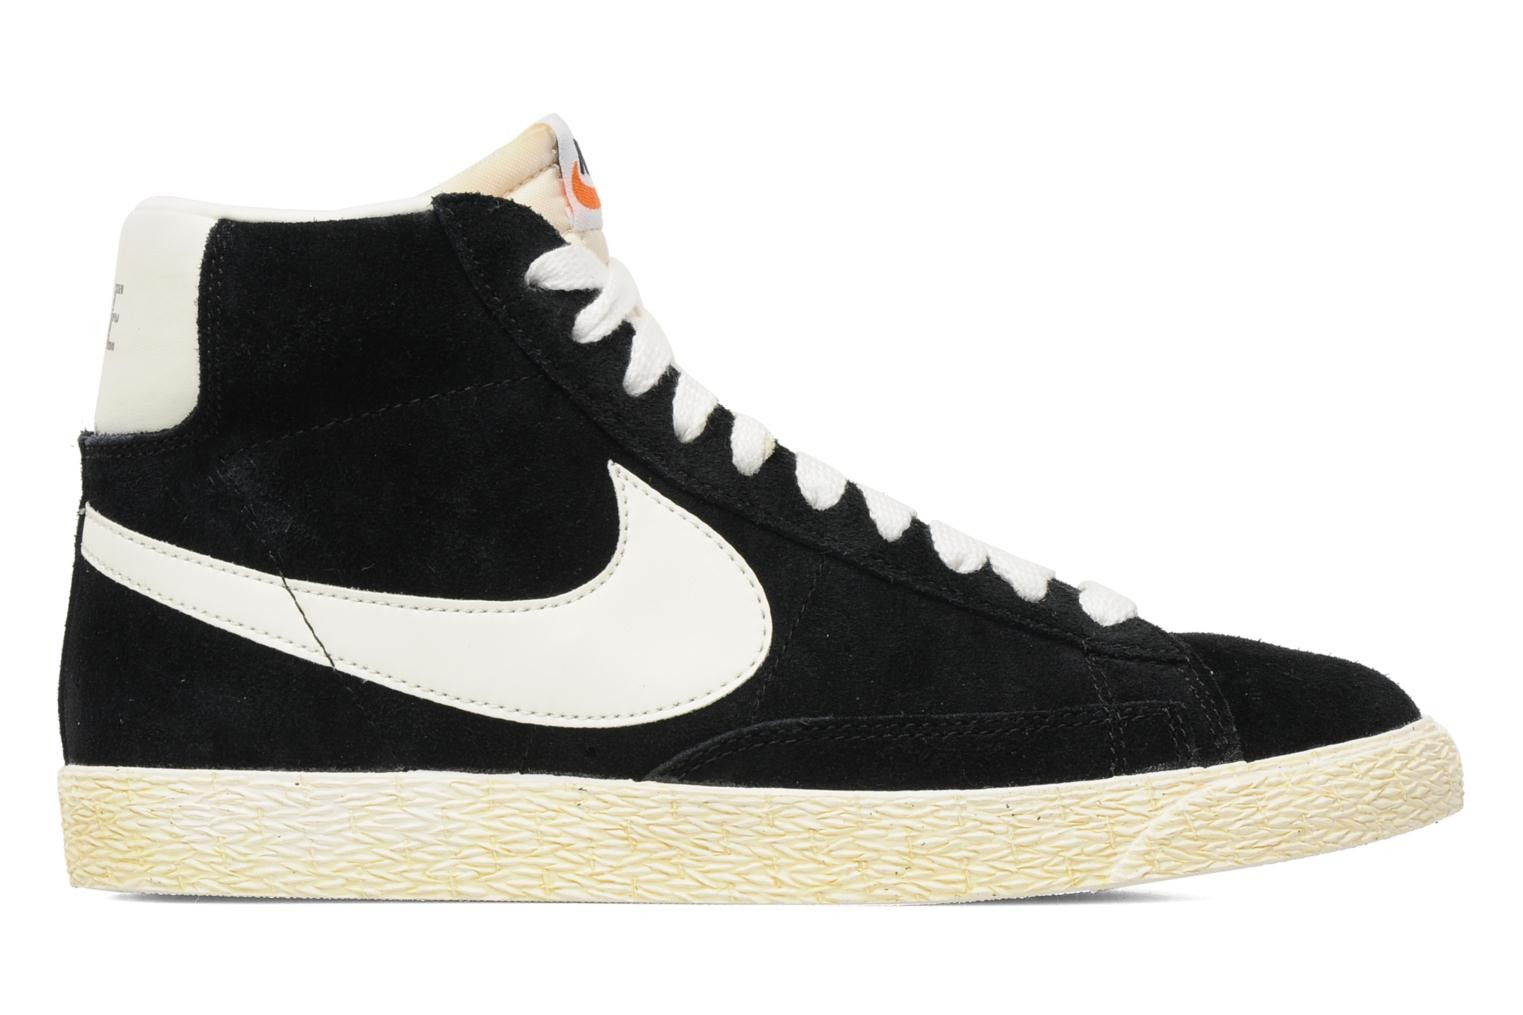 Nike Blazer High Vintage Black Sail Men's Shoe